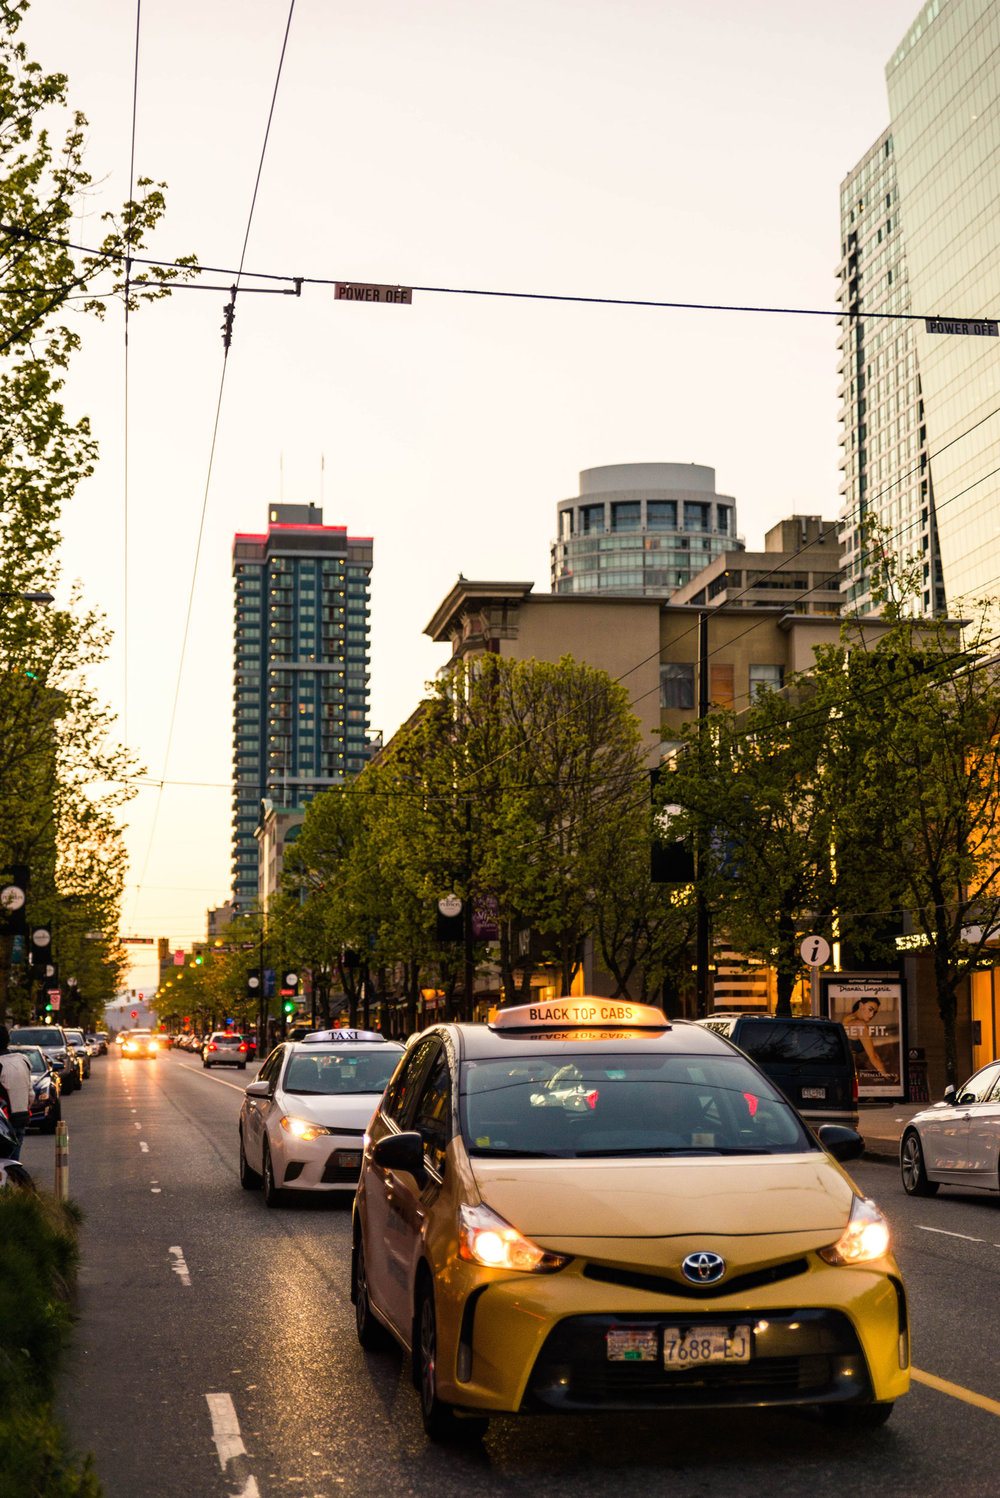 Robson Street in the late afternoon